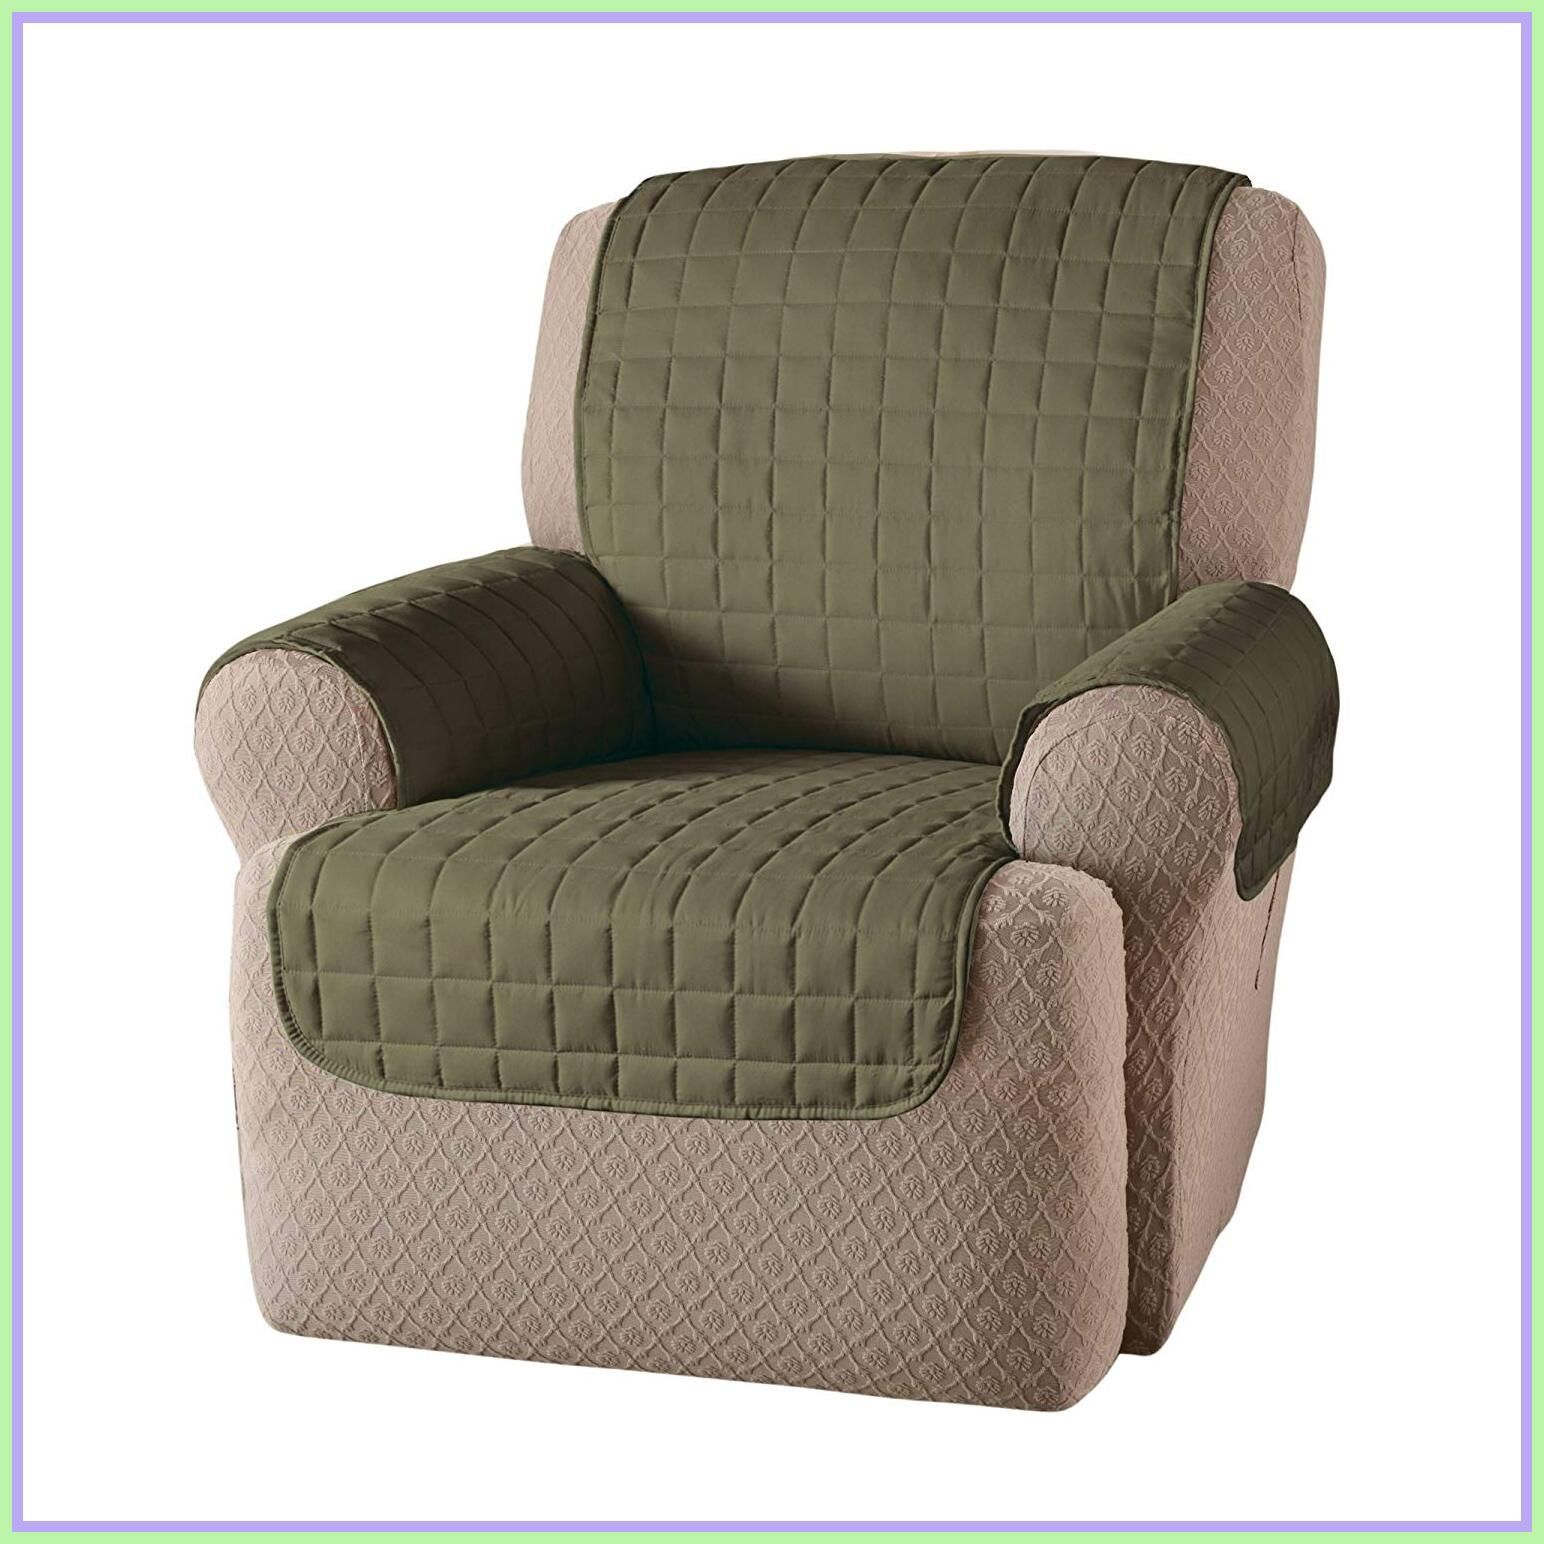 Small Recliner Chair Covers Small Recliner Chair Covers Please Click Link To Find More Reference Enjoy In 2020